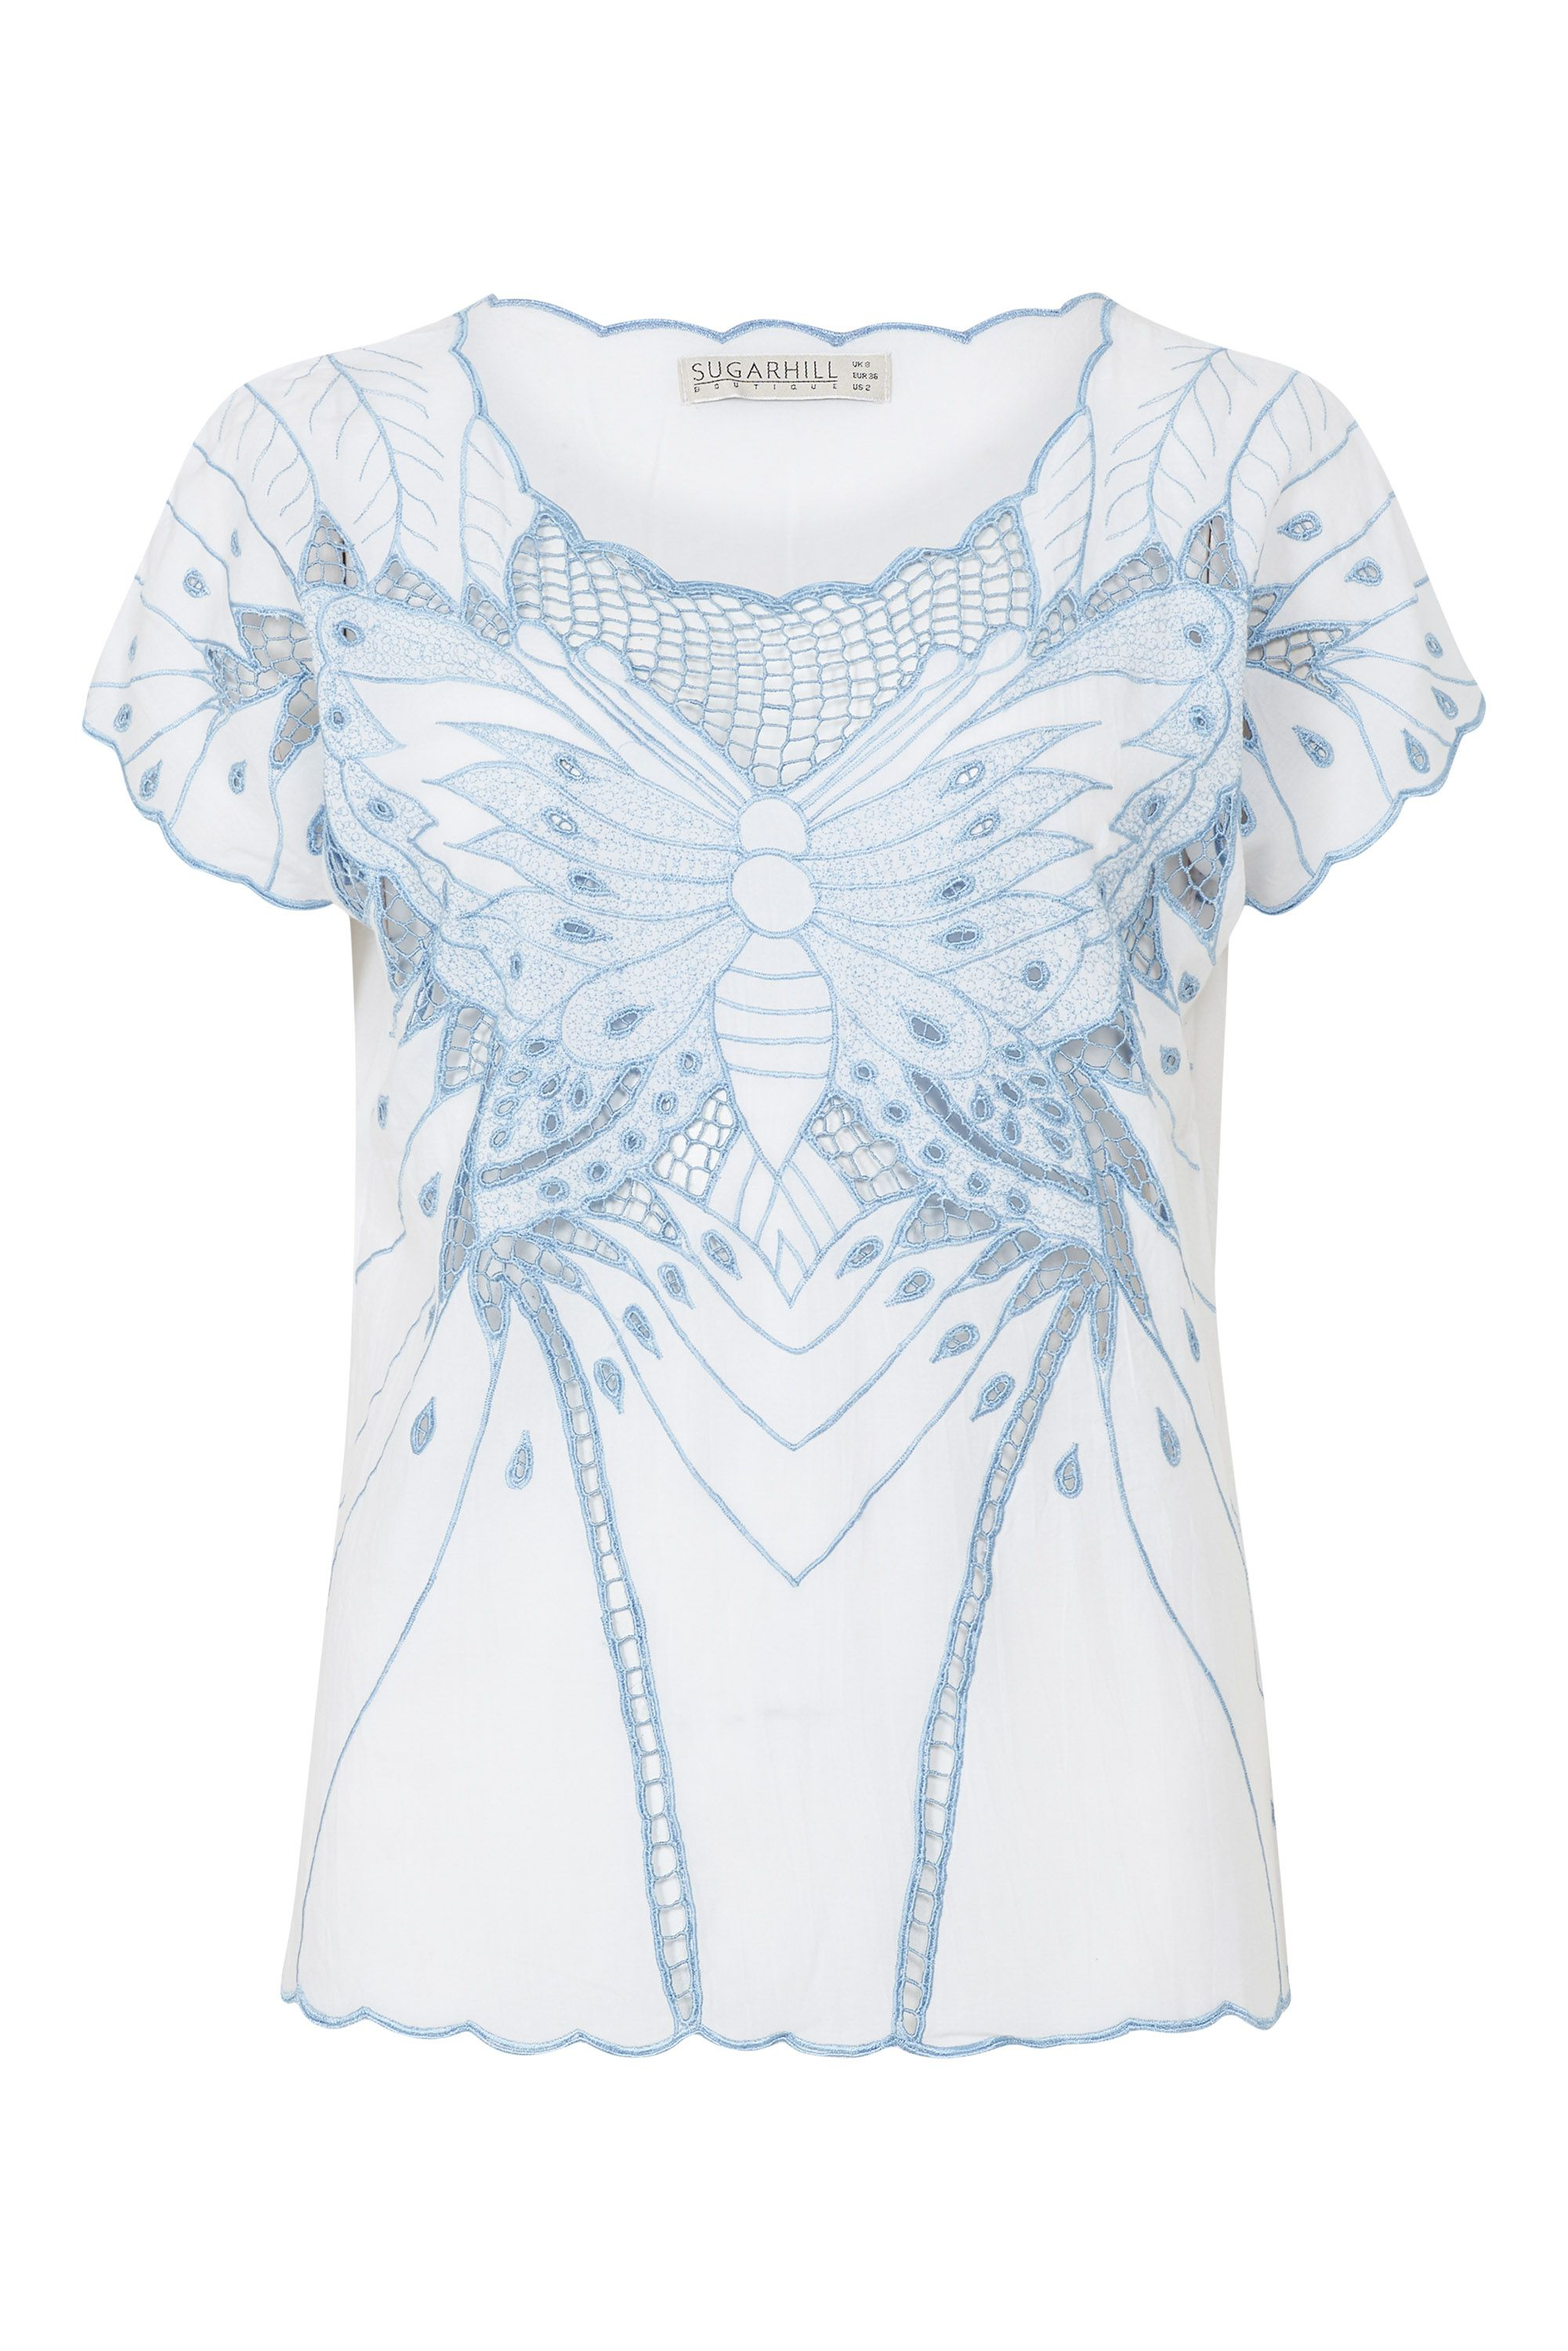 Sugarhill Boutique Butterfly Cutwork Top, White